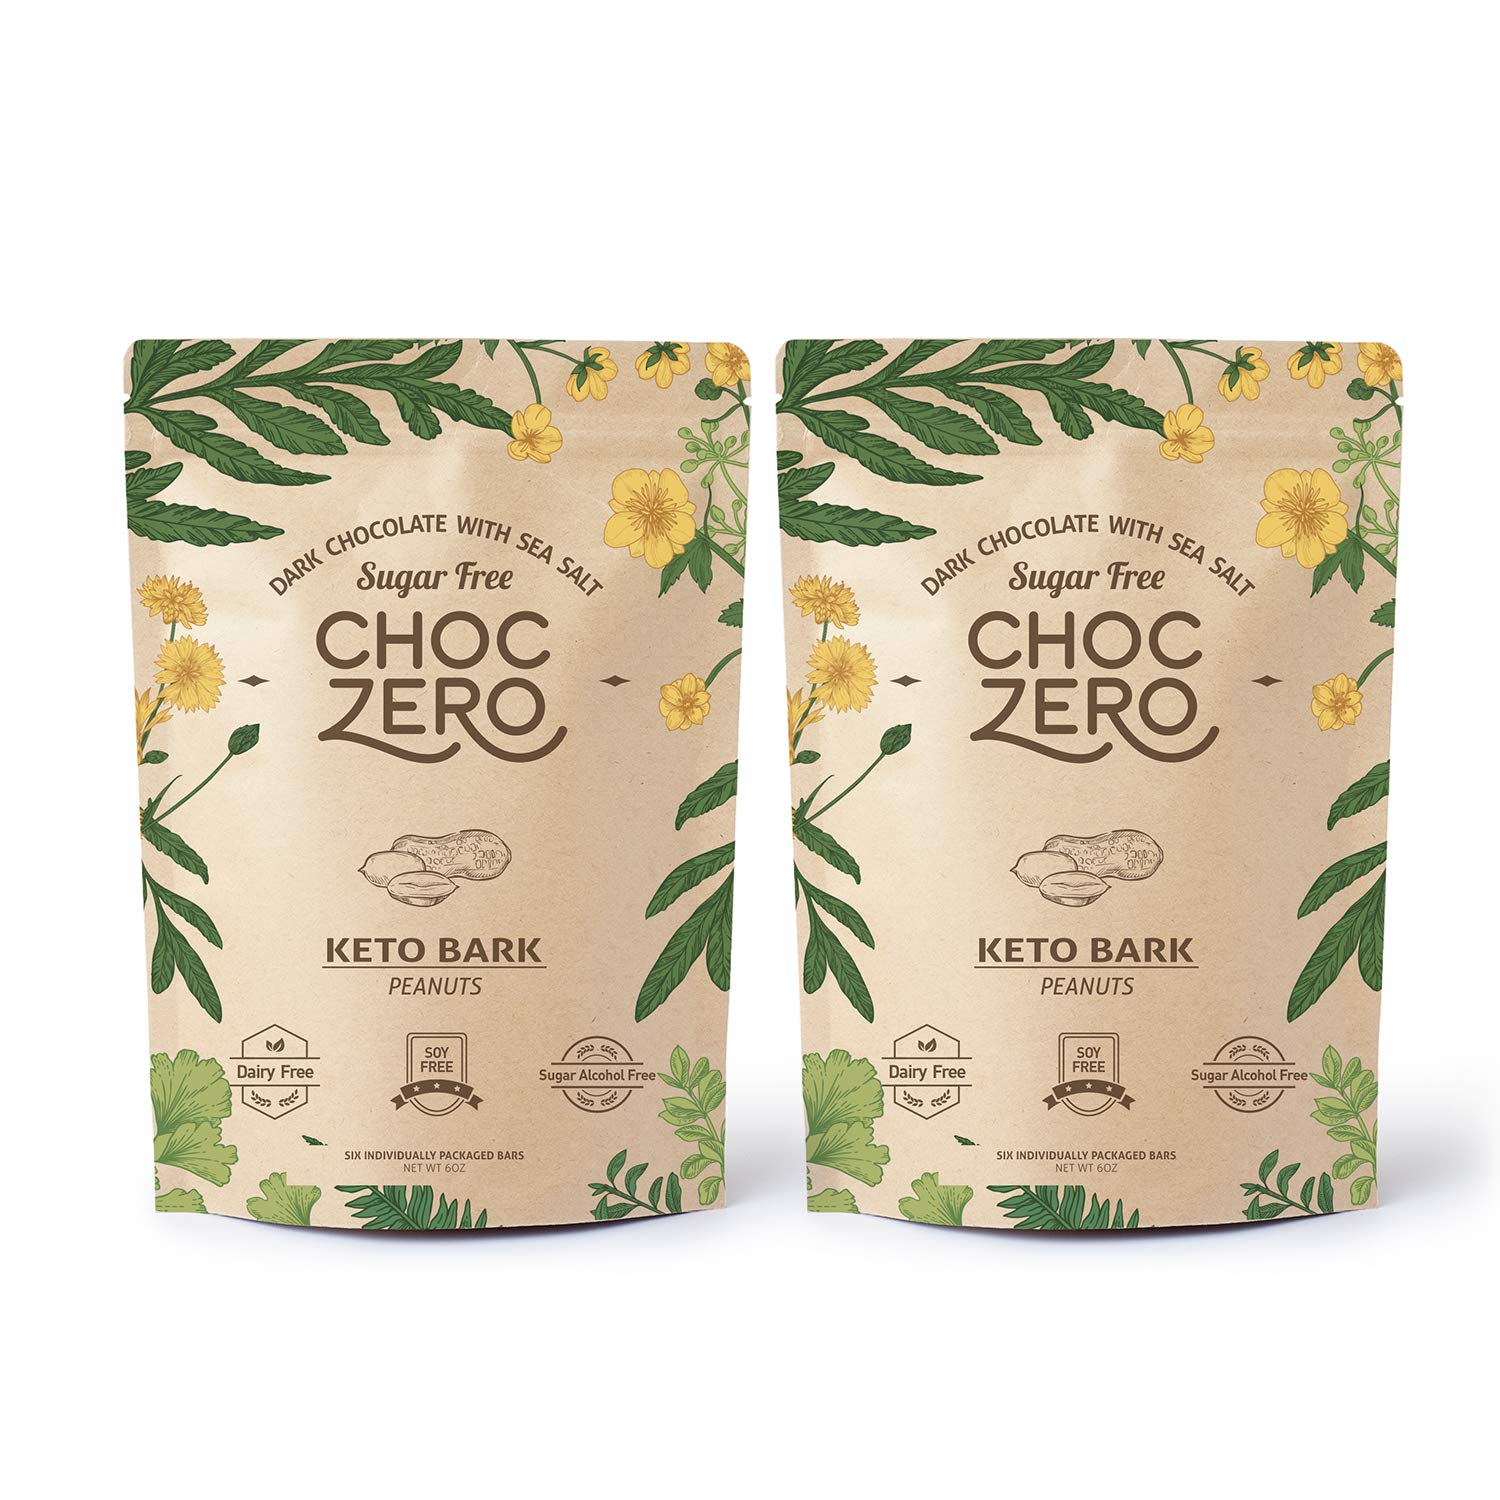 ChocZero's Keto Bark, Dark Chocolate Peanuts with Sea Salt. Sugar Free, Low Carb. No Sugar Alcohols, No Artificial Sweeteners, All Natural, Non-GMO (2 bags, 6 servings/each) by ChocZero